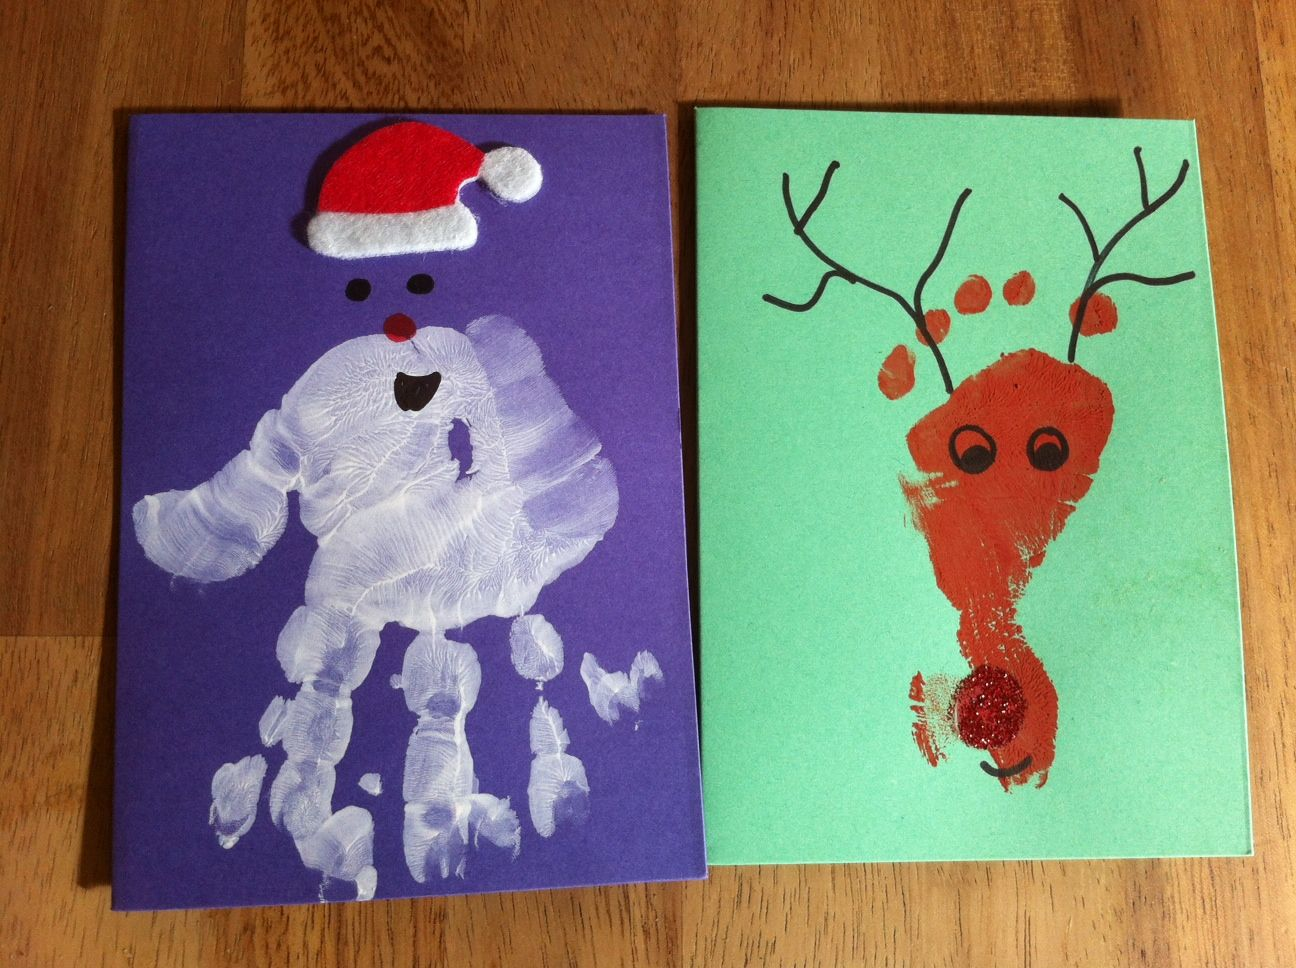 Crafts for a 3 year old - Arts And Crafts For 1 Year Olds 3 Year Old Arts And Crafts Arts And